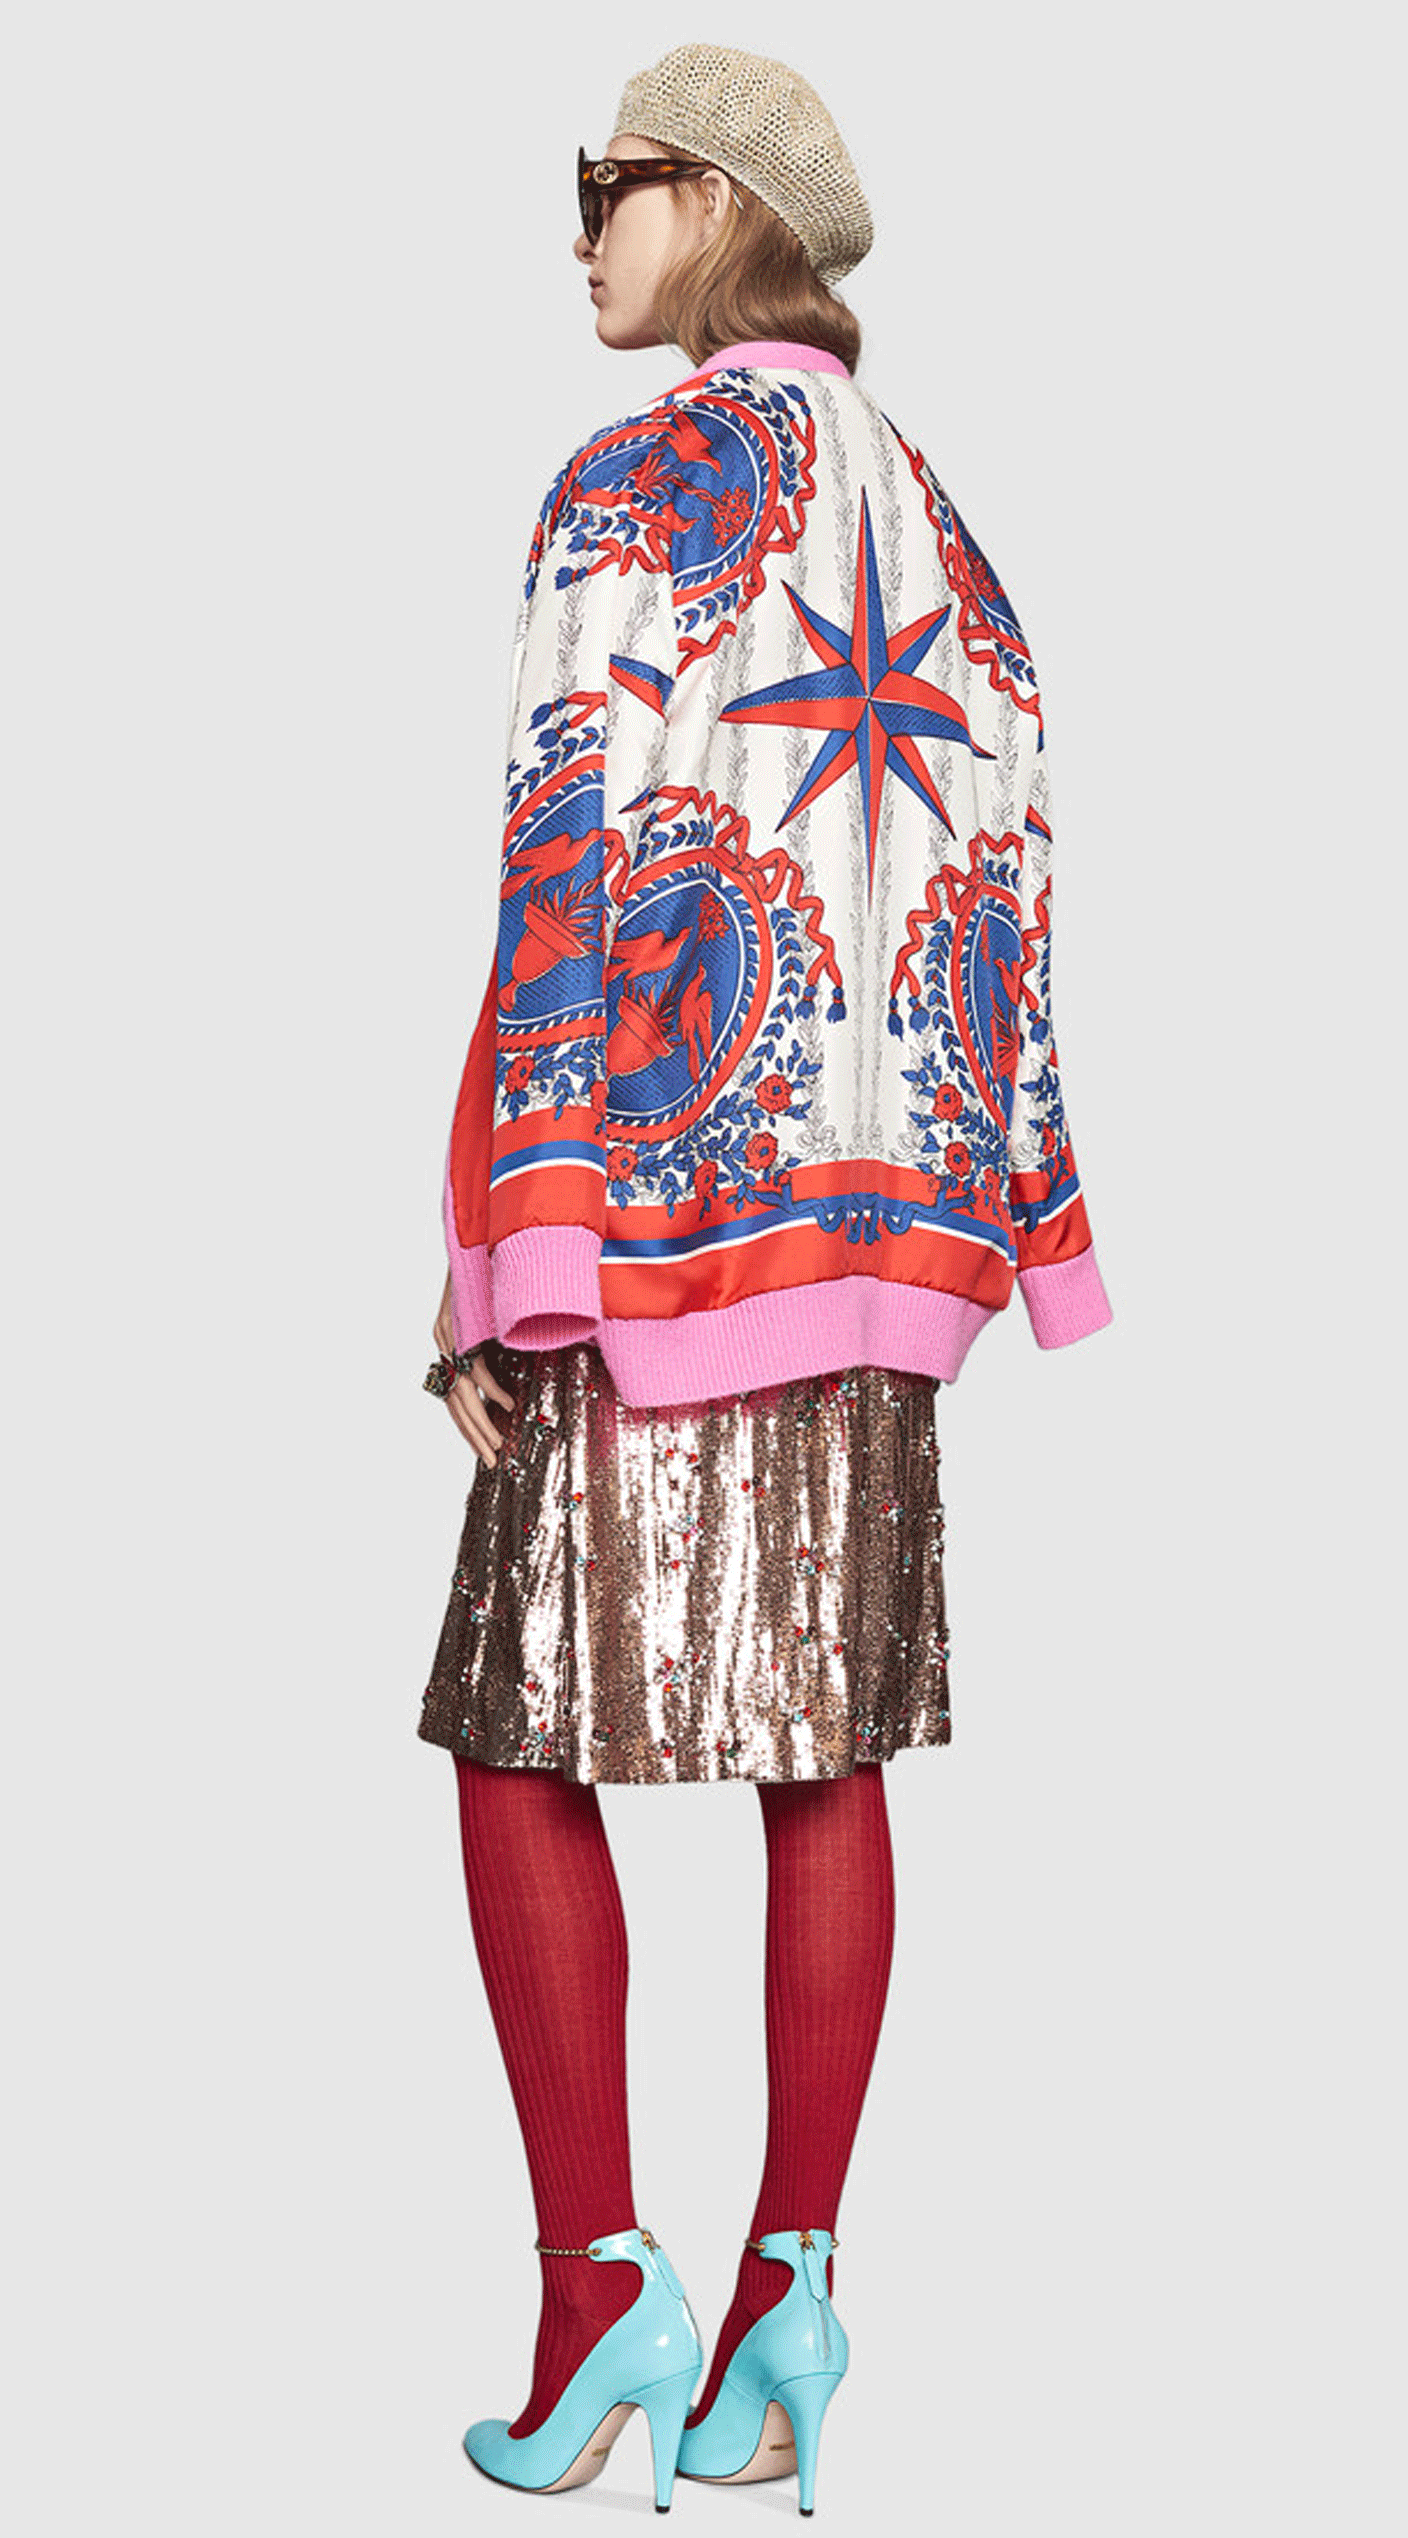 gucci pre-fall 2016 collection | @themissprints